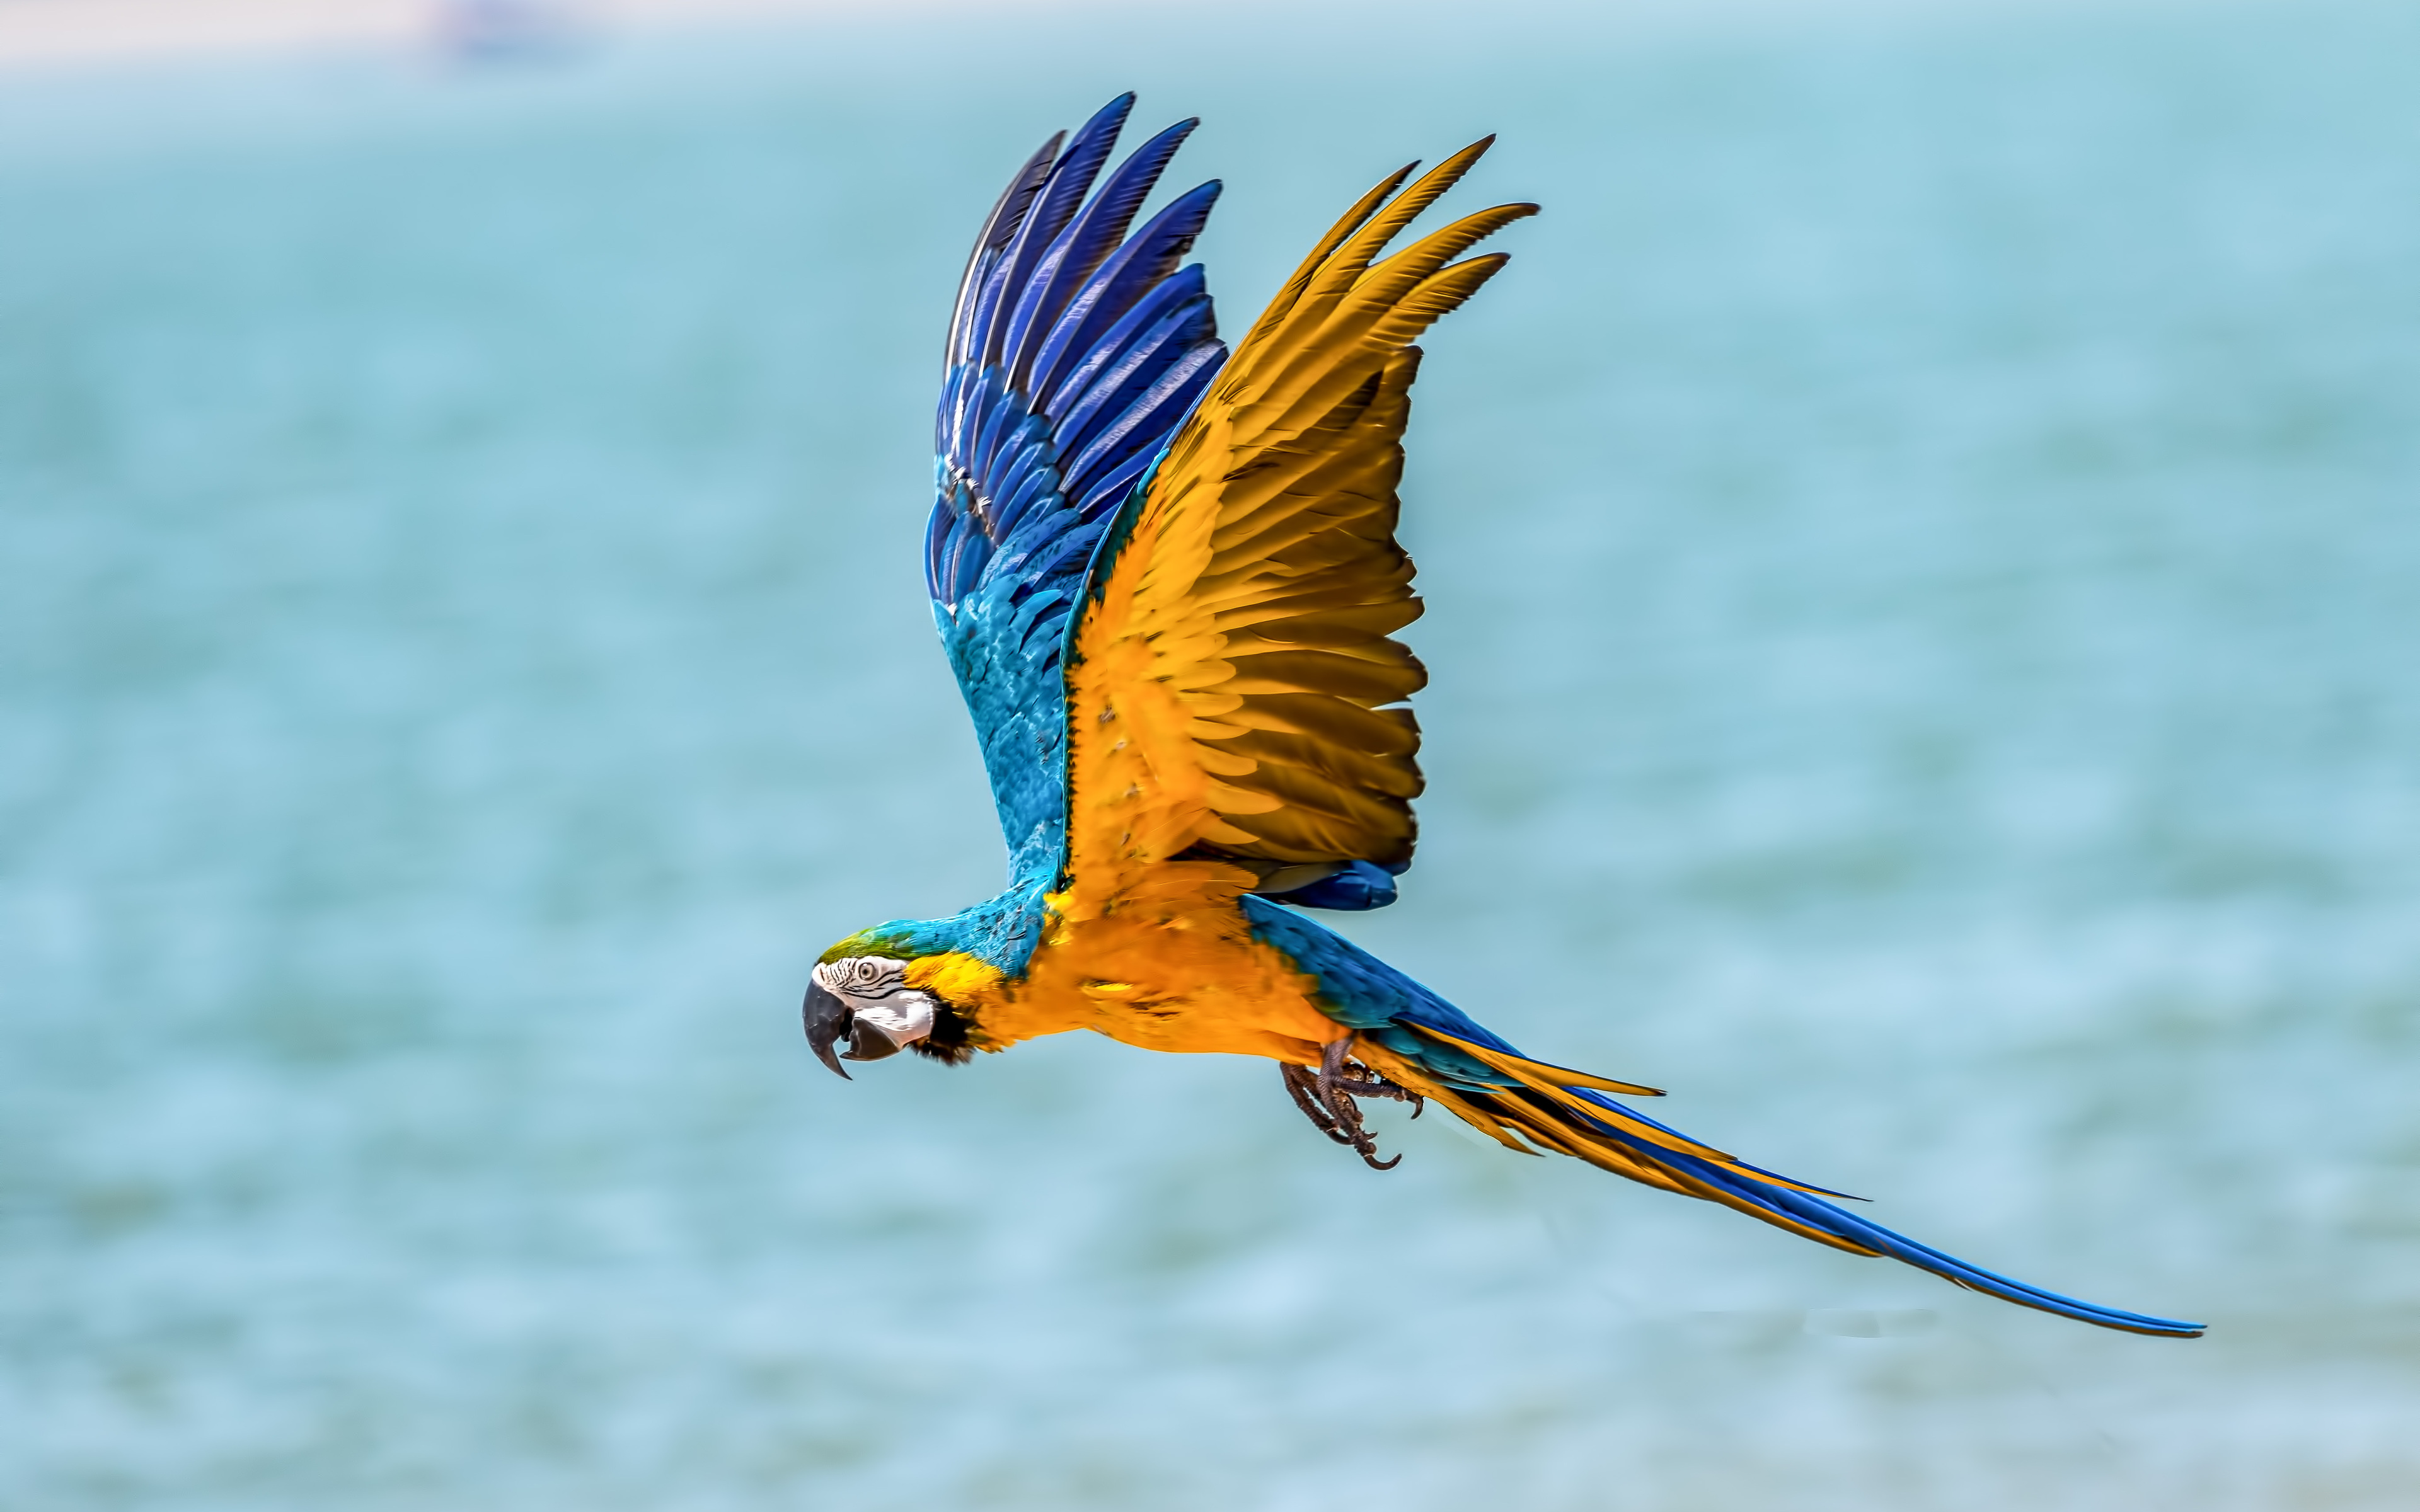 3840x2400 Macaw Bird 5k 4k Hd 4k Wallpapers Images Backgrounds Photos And Pictures